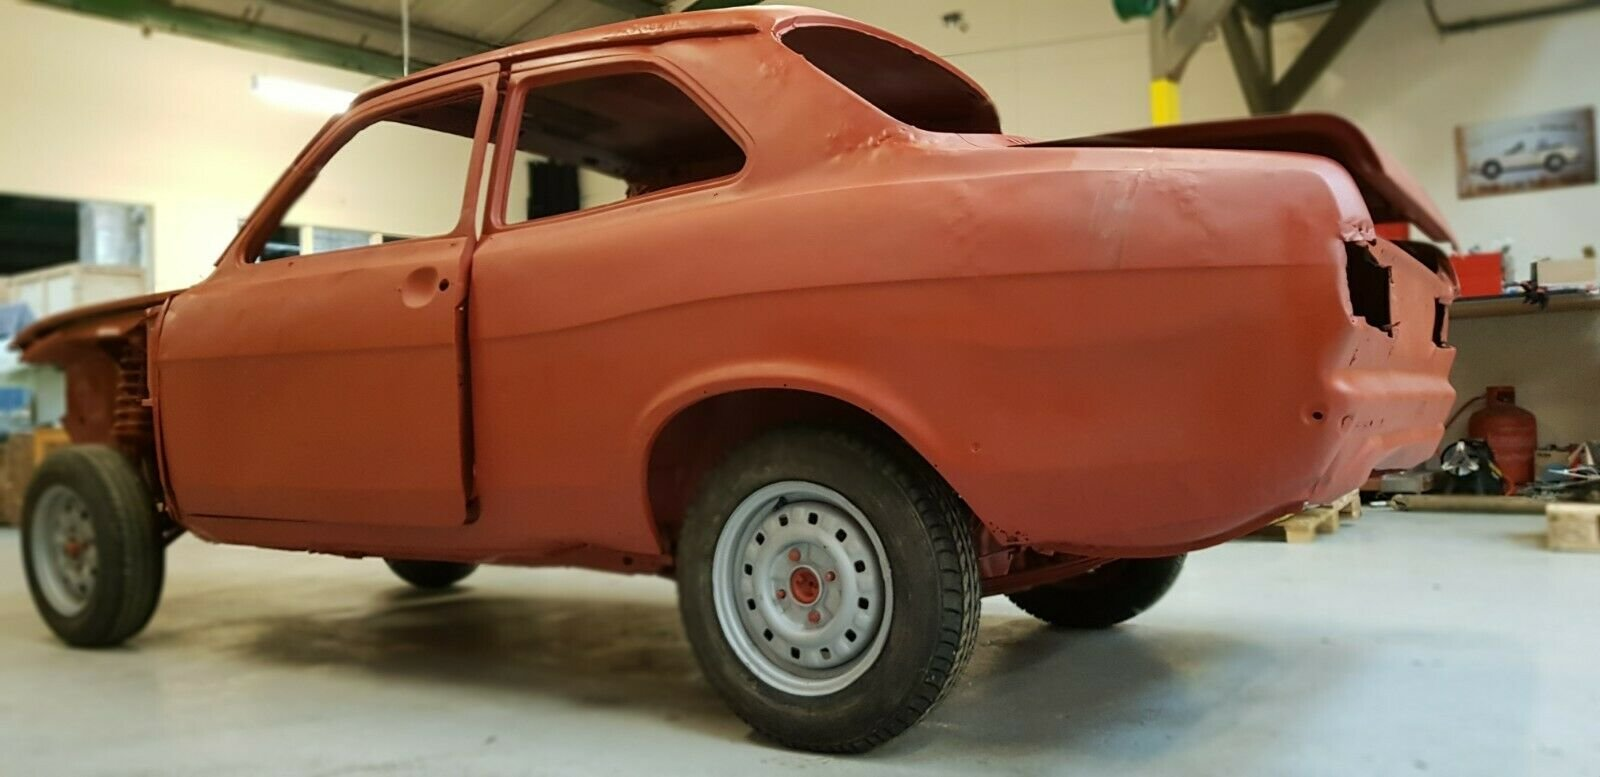 Both Sides Available 2 Centre Chassis Section 1968-1980 1 Side Escort Mk 1